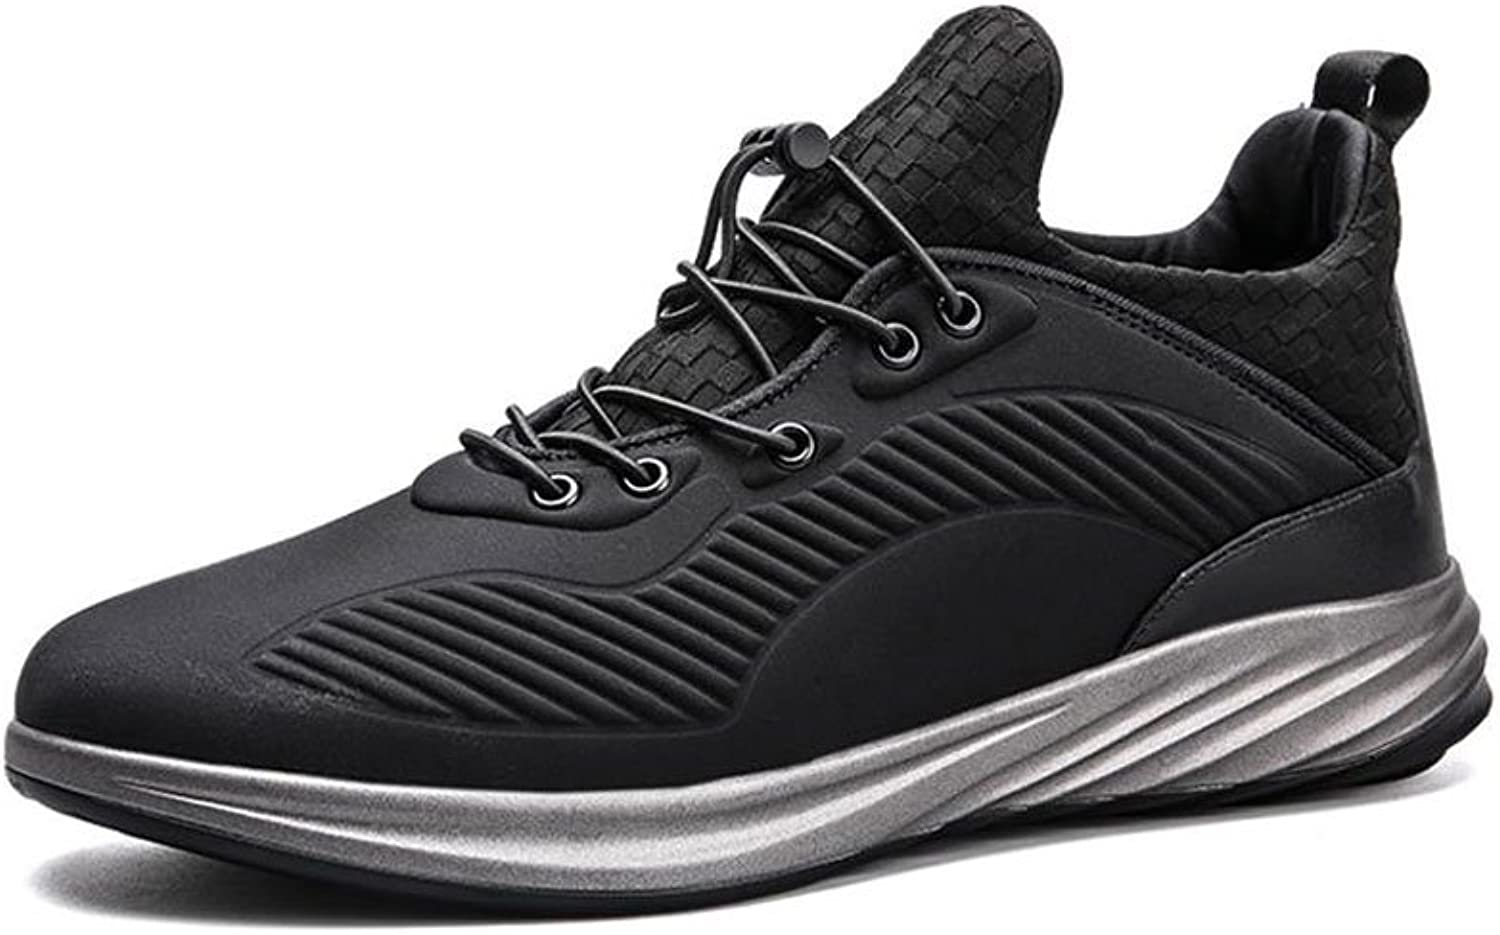 HUL Men's shoes shoes Outdoor Sports shoes Male Casual Wild Heighten Running shoes Non-Slip Breathable Casual